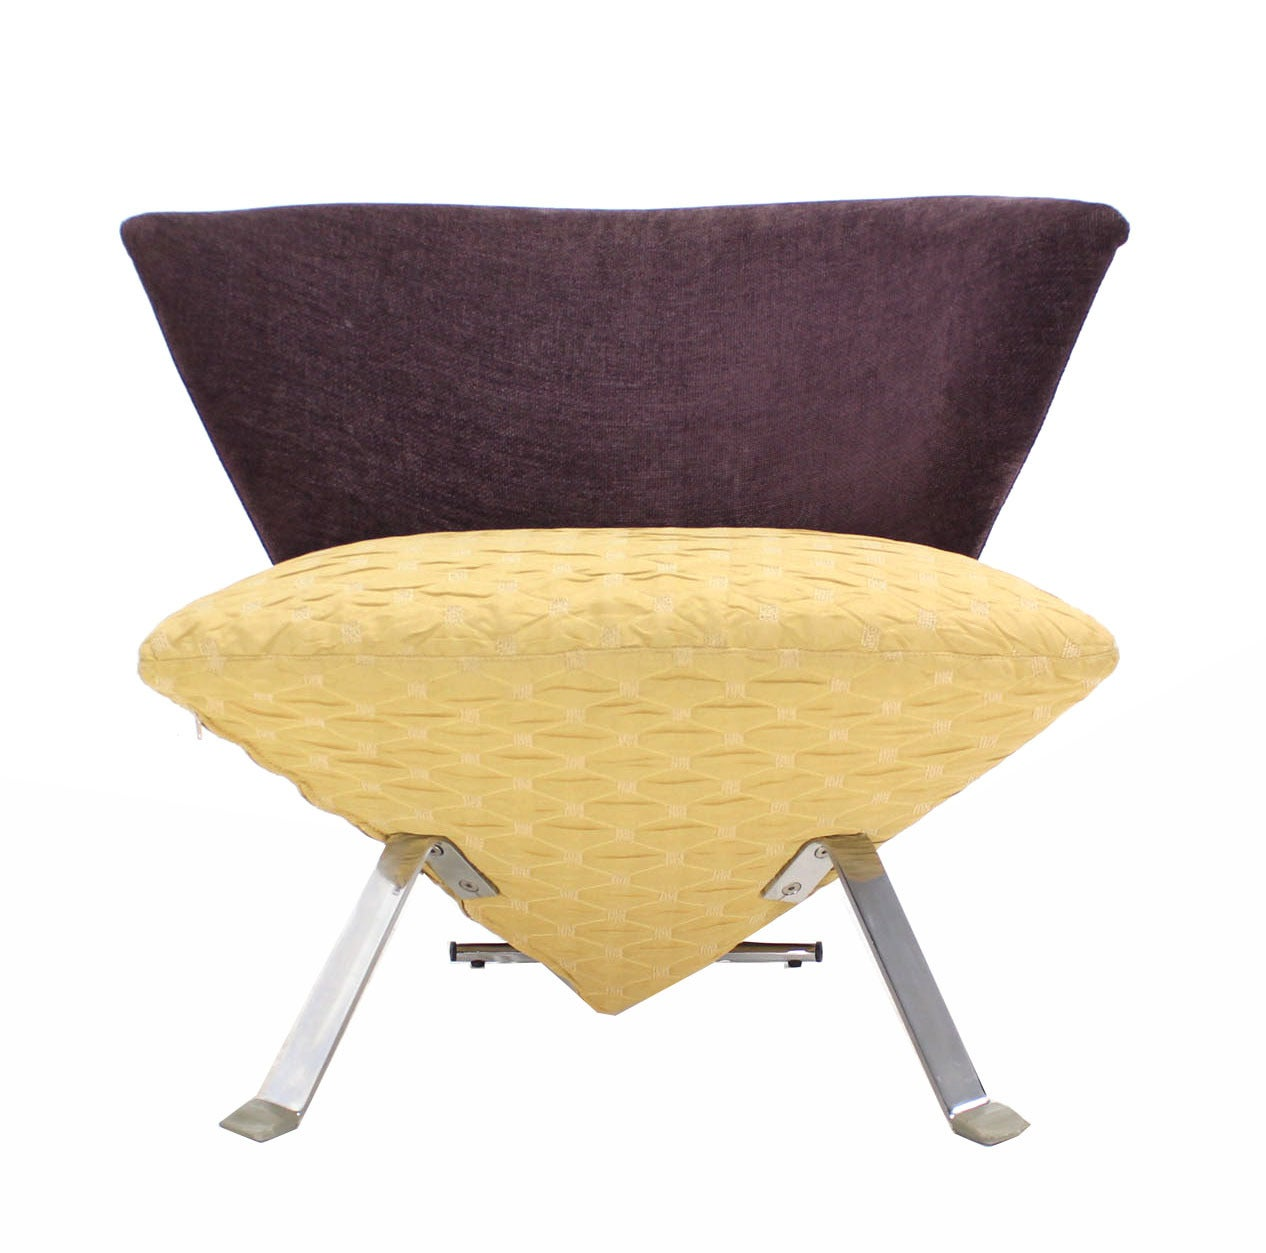 Pair of Saporiti Italian Modern Lounge Chairs For Sale at